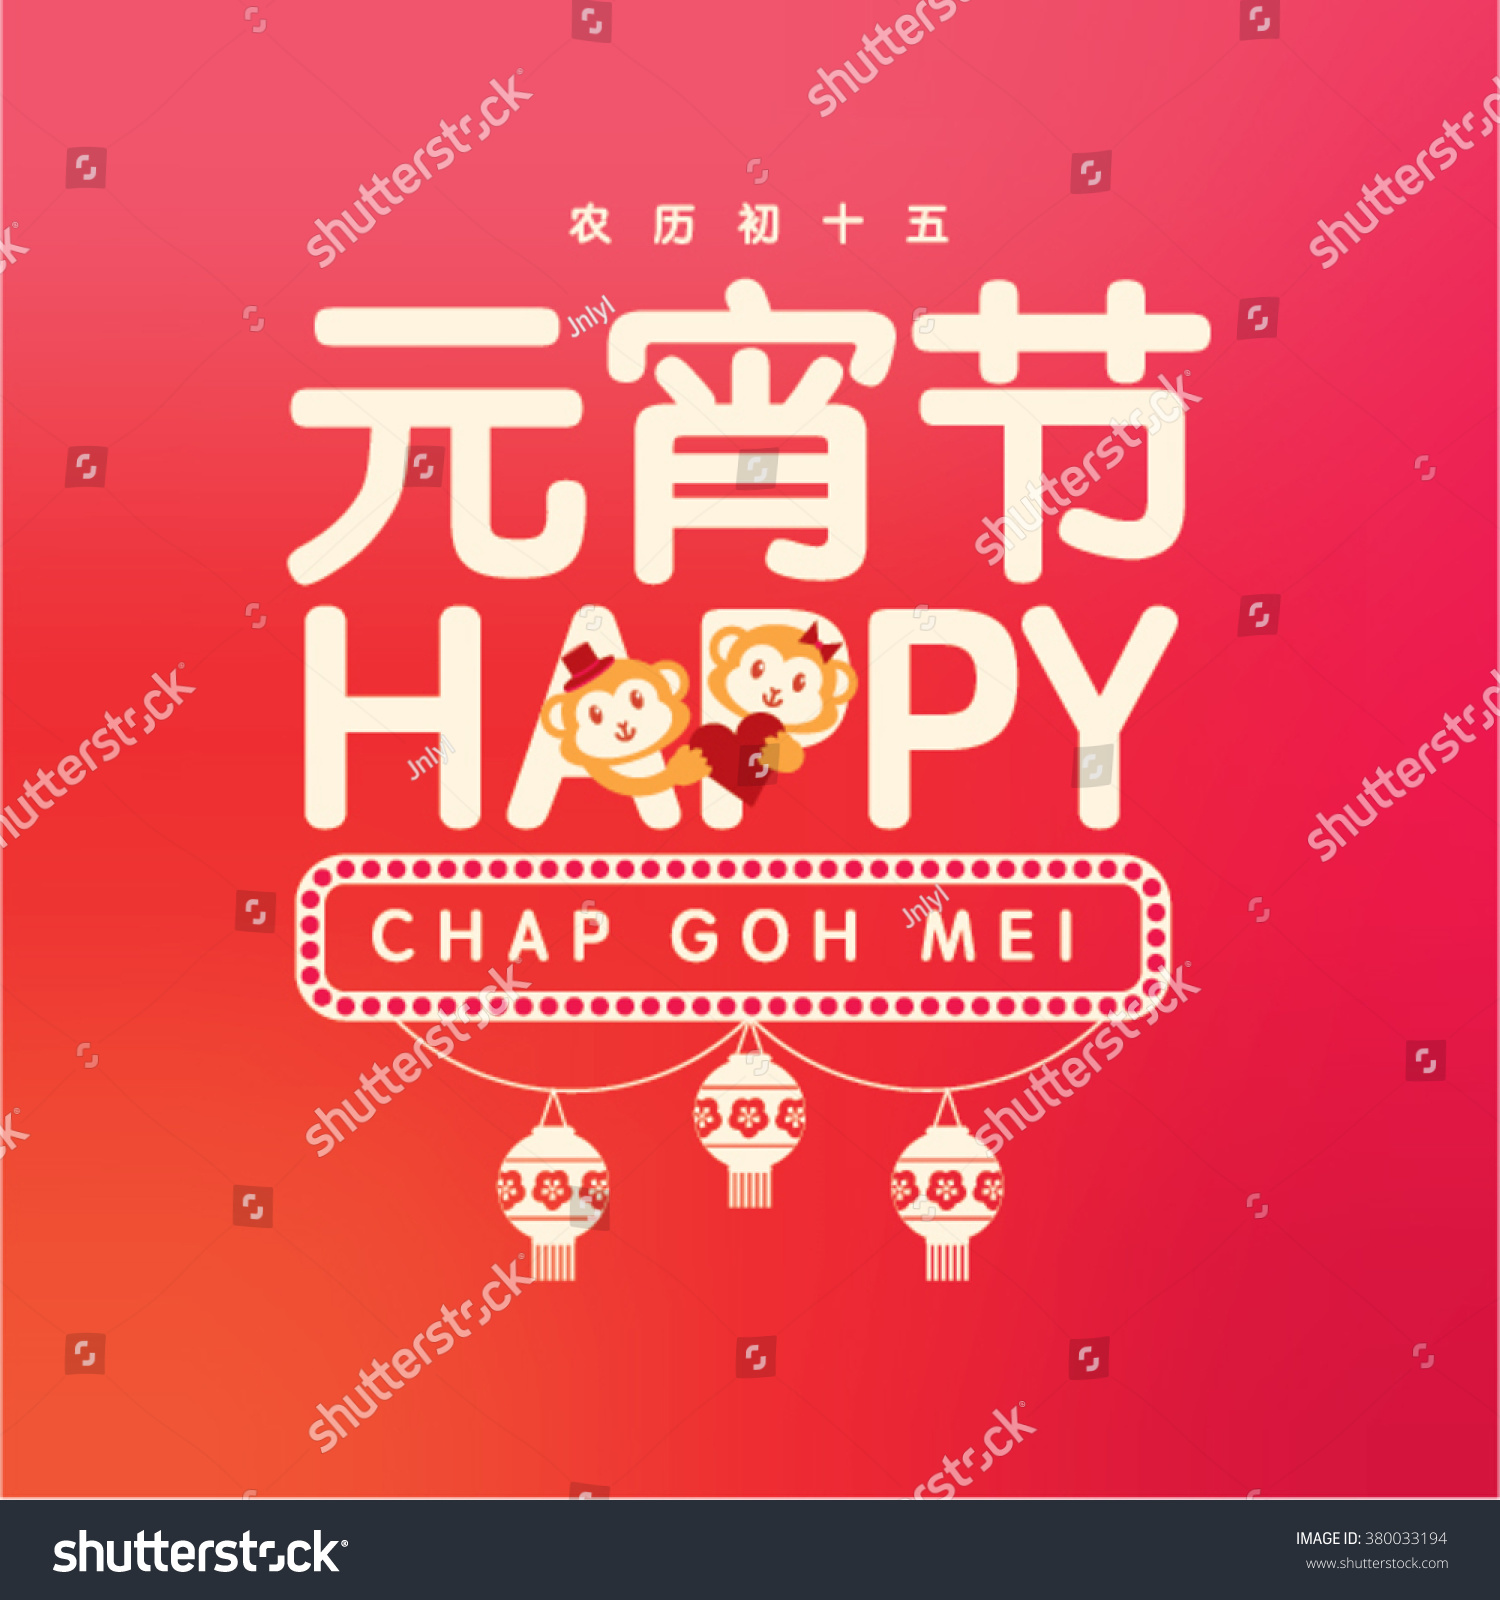 Chinese new year greetings lantern festival stock vector 380033194 chinese new year greetings lantern festival chinese valentines day year of the monkey kristyandbryce Choice Image